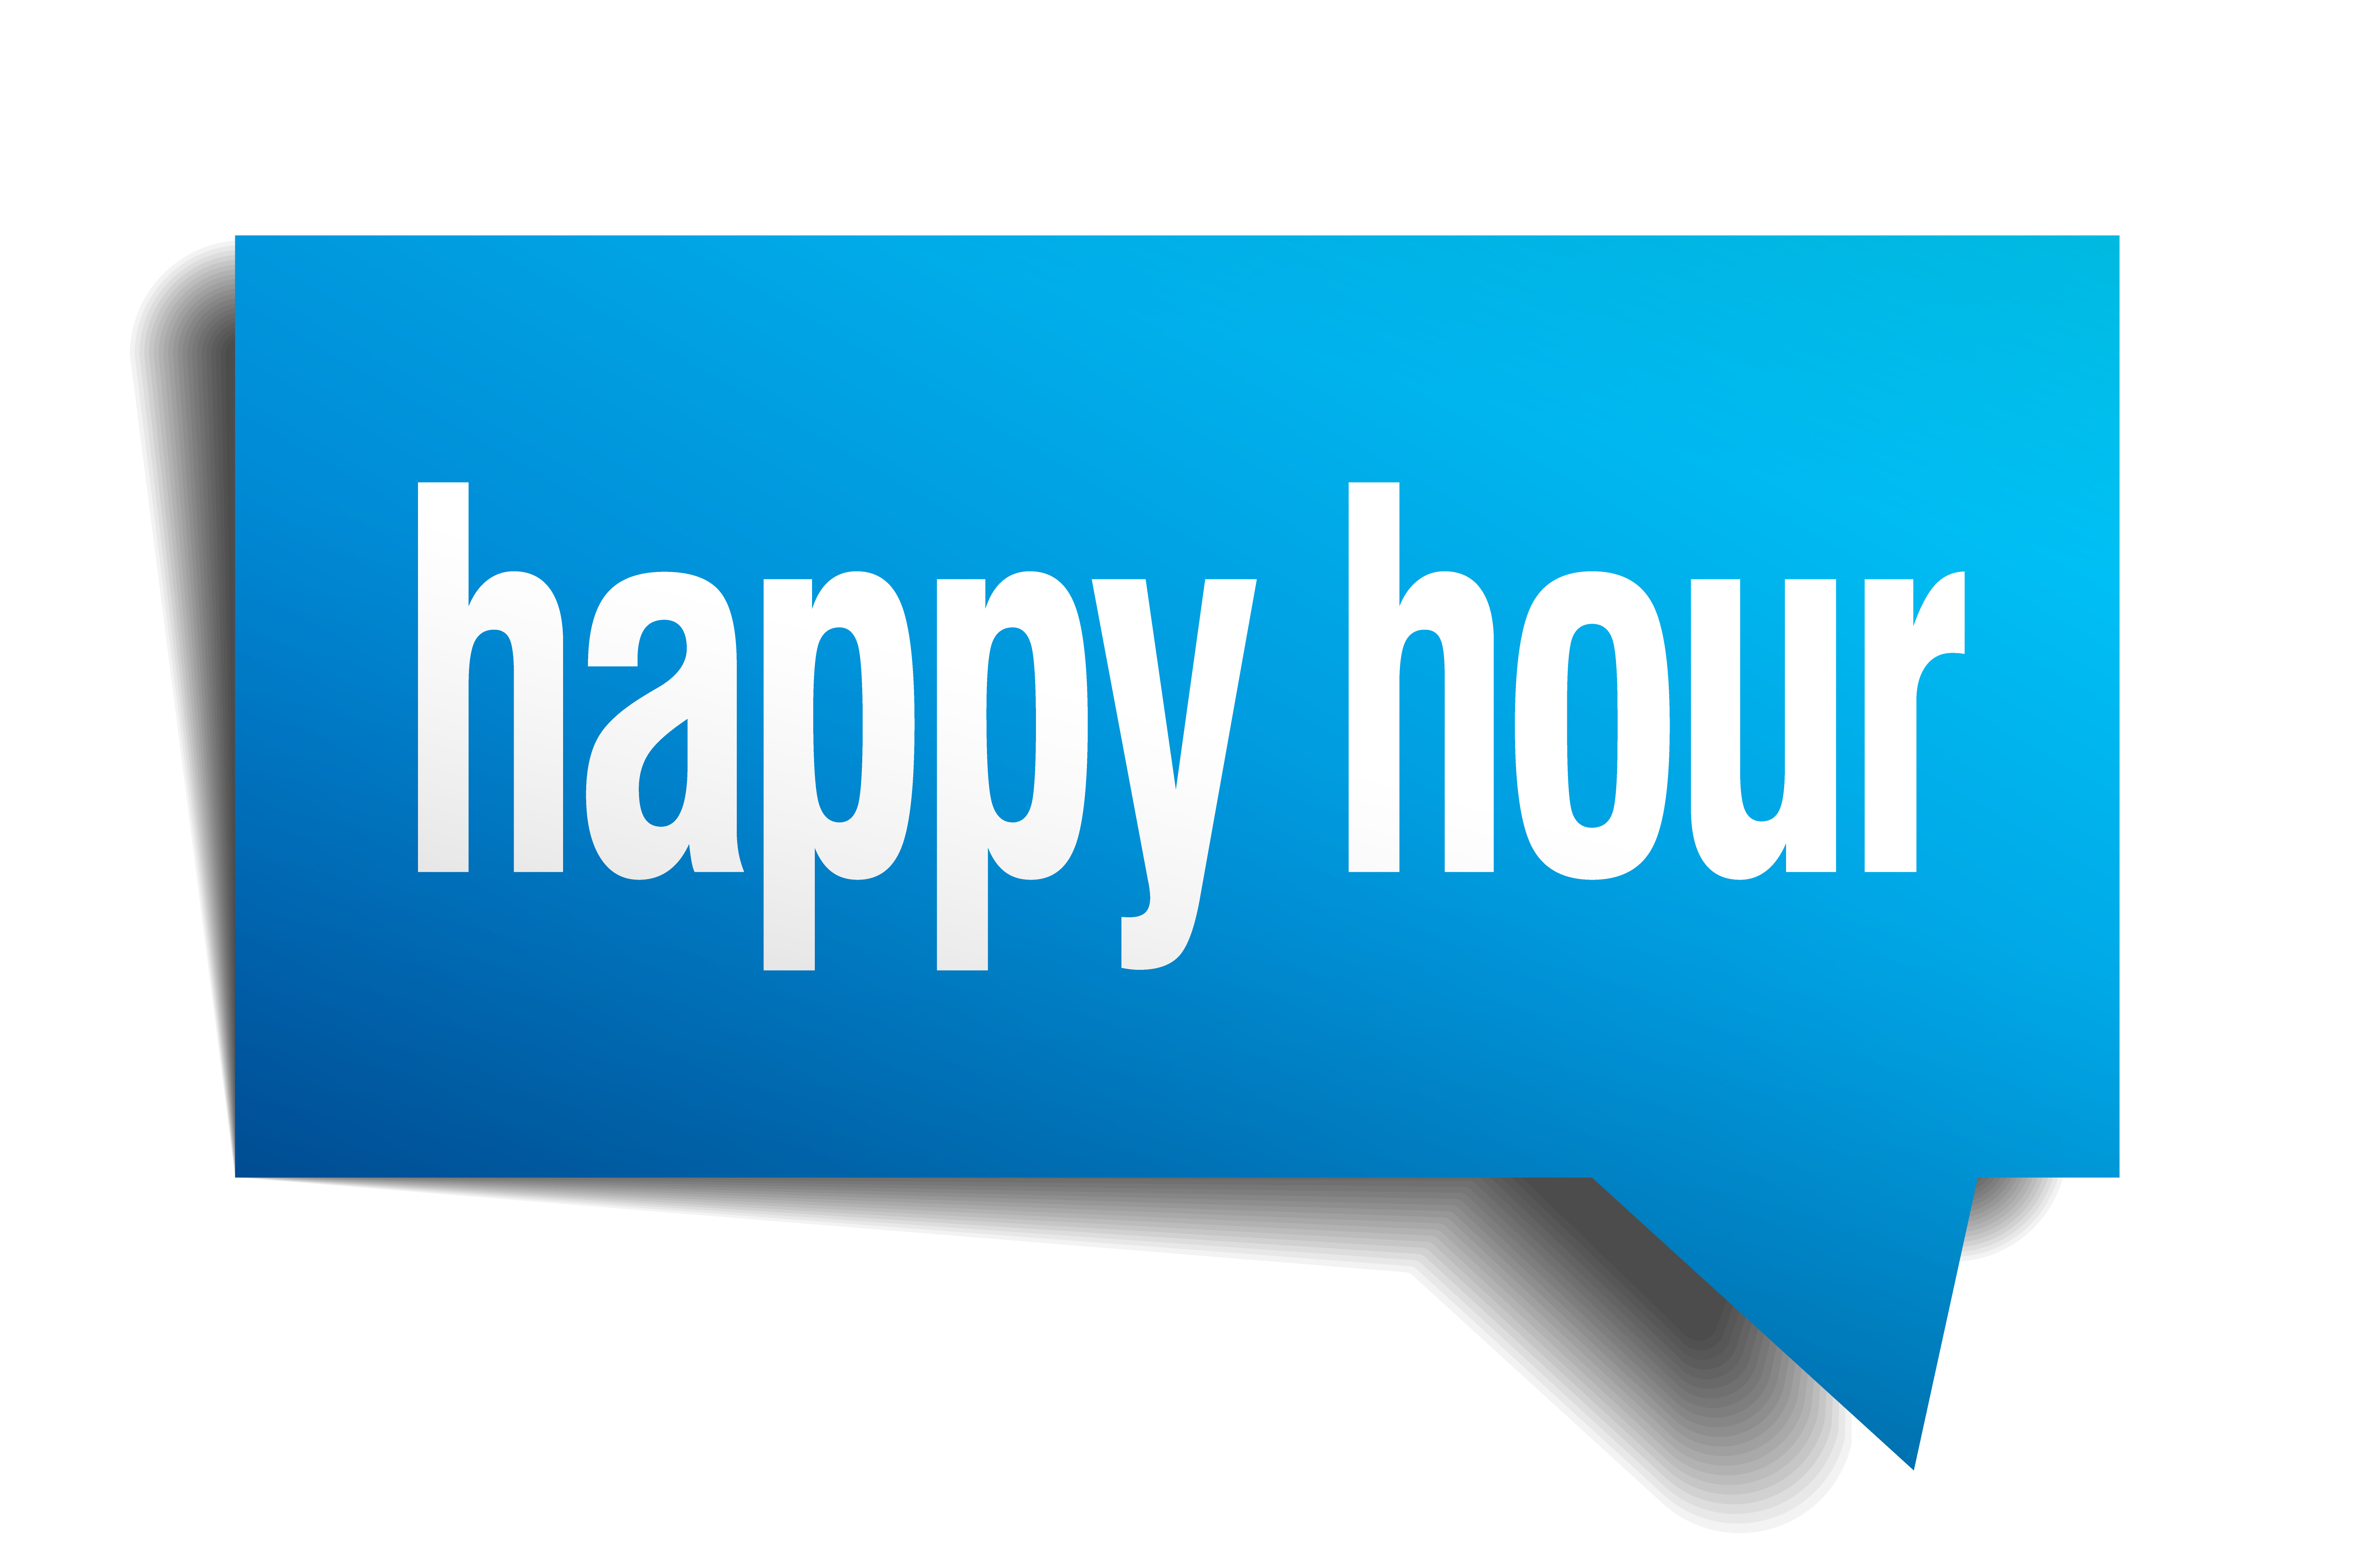 happy hour Mr pc is back on the air with the hit show drive time happy hour tune in live over the internet stream or listen to the archive via podcast.